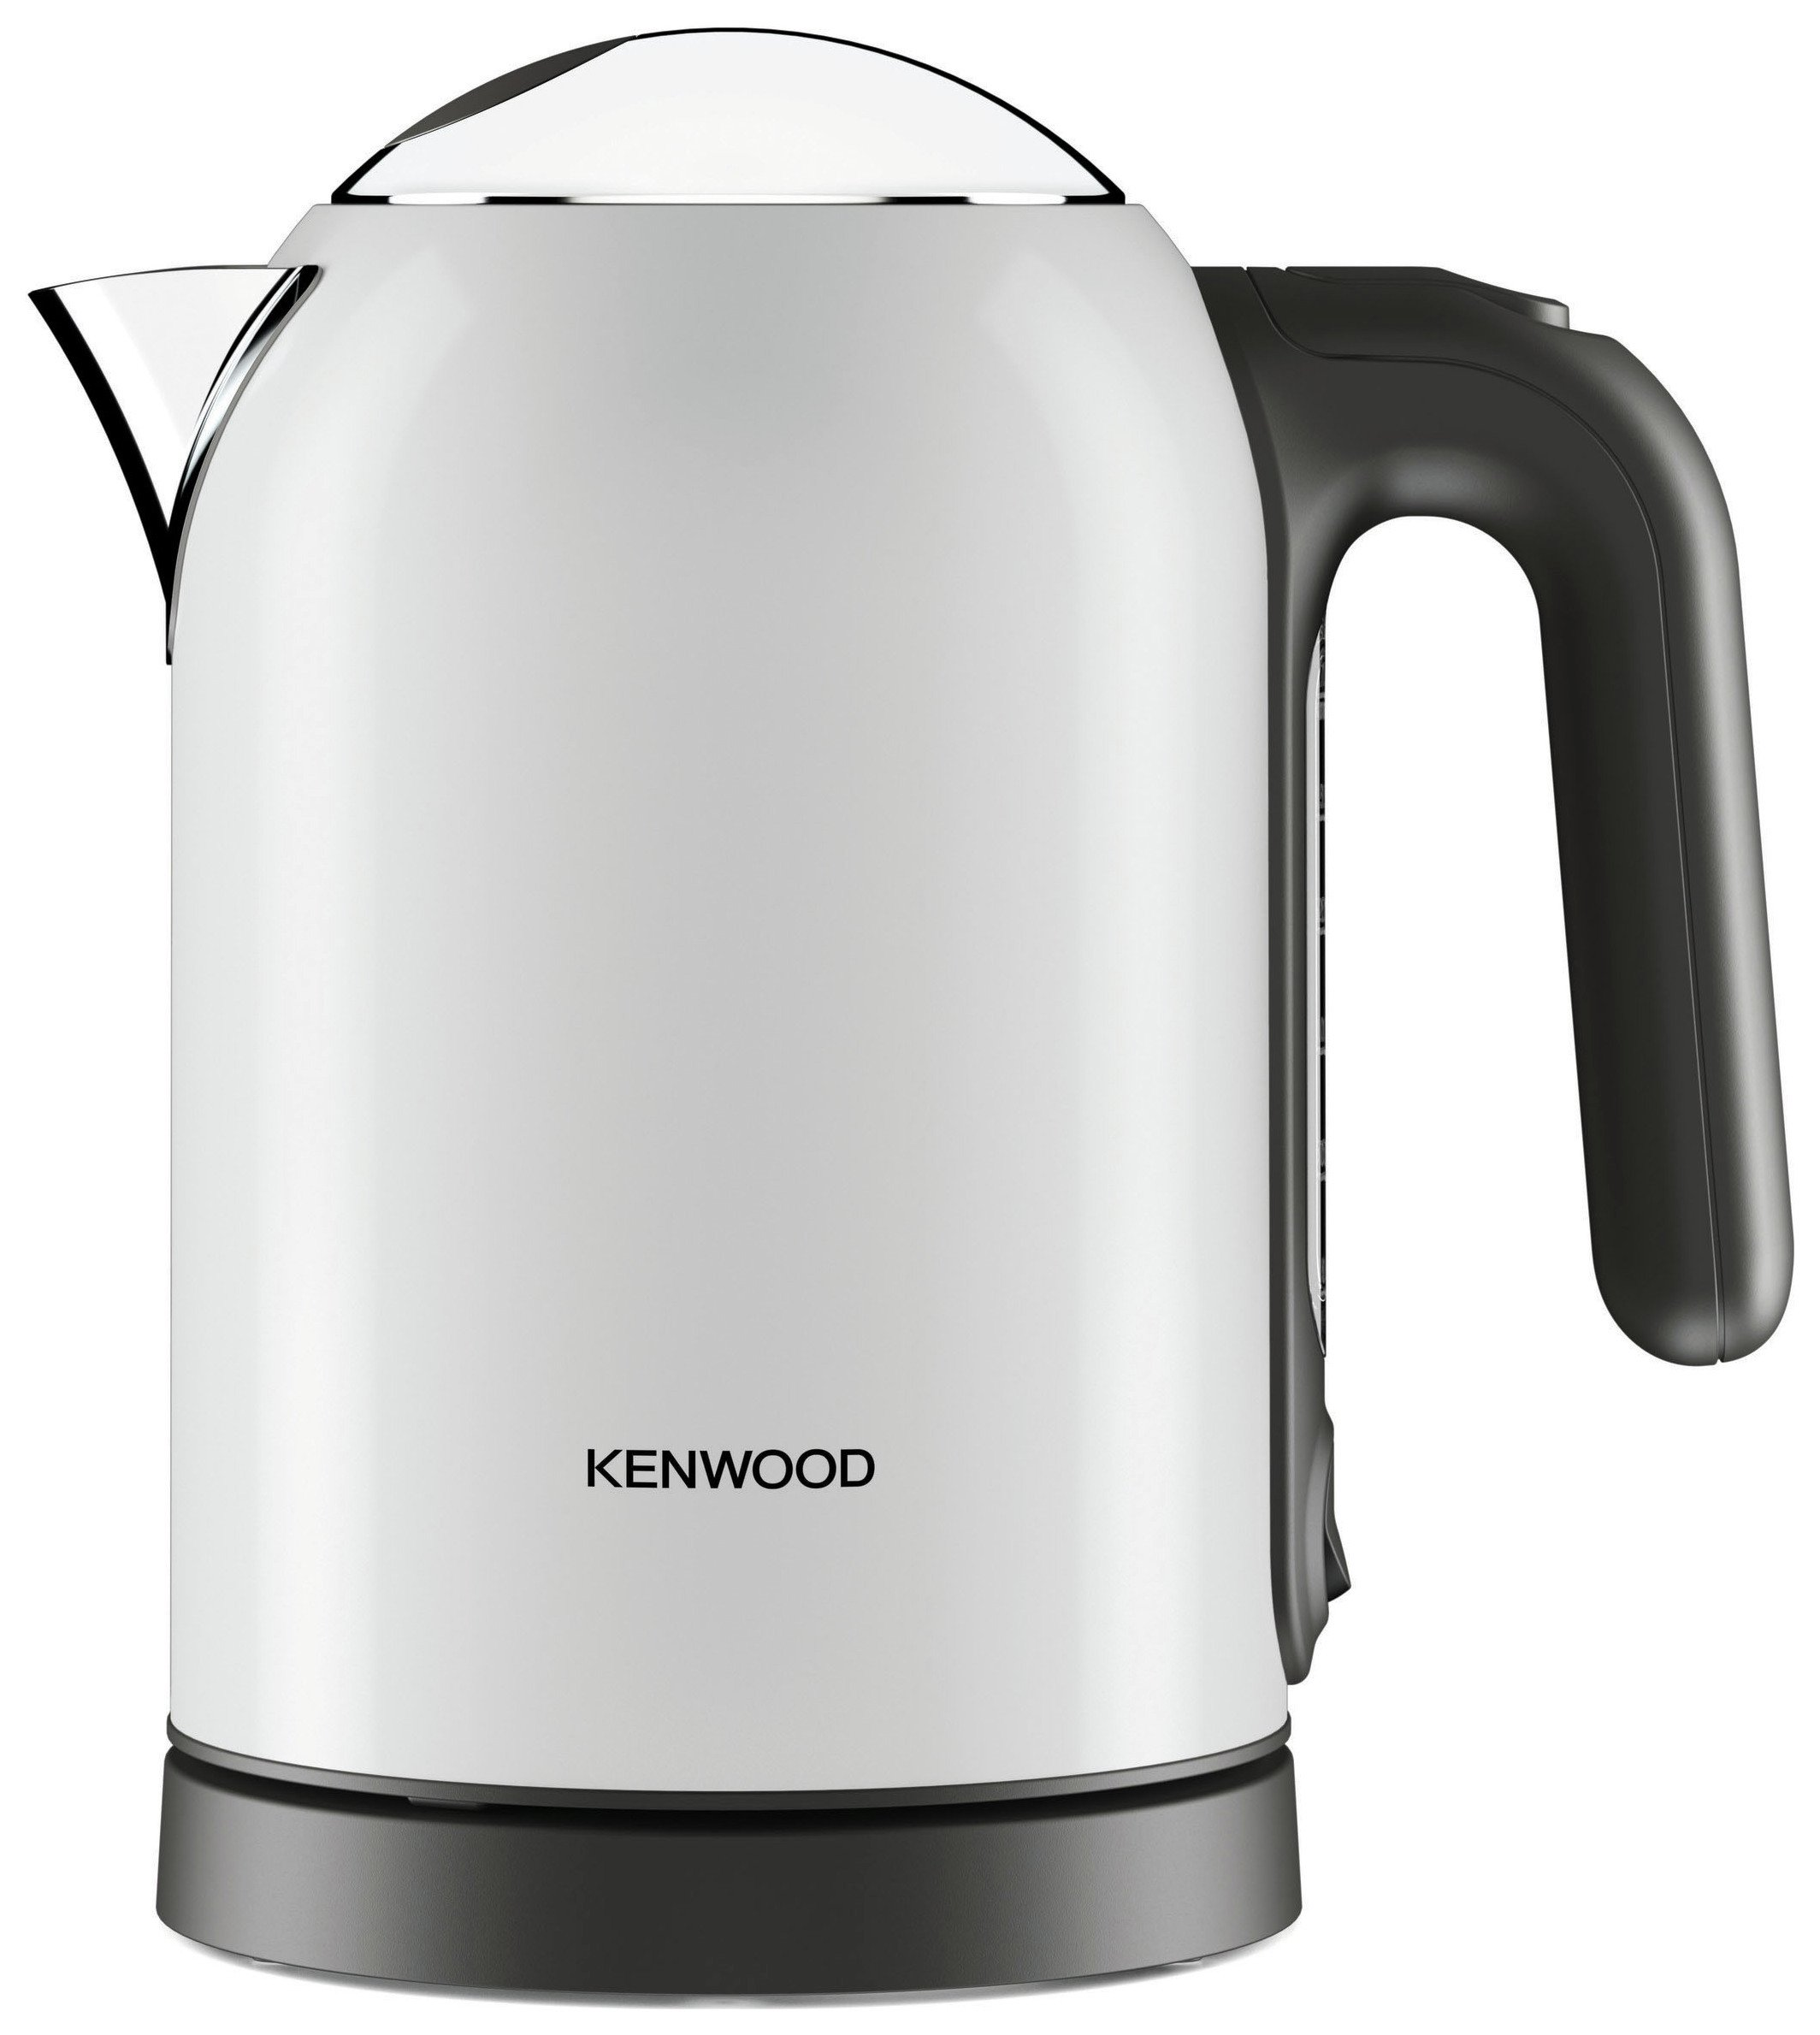 kenwood kettle jkp210 kettle true white. Black Bedroom Furniture Sets. Home Design Ideas